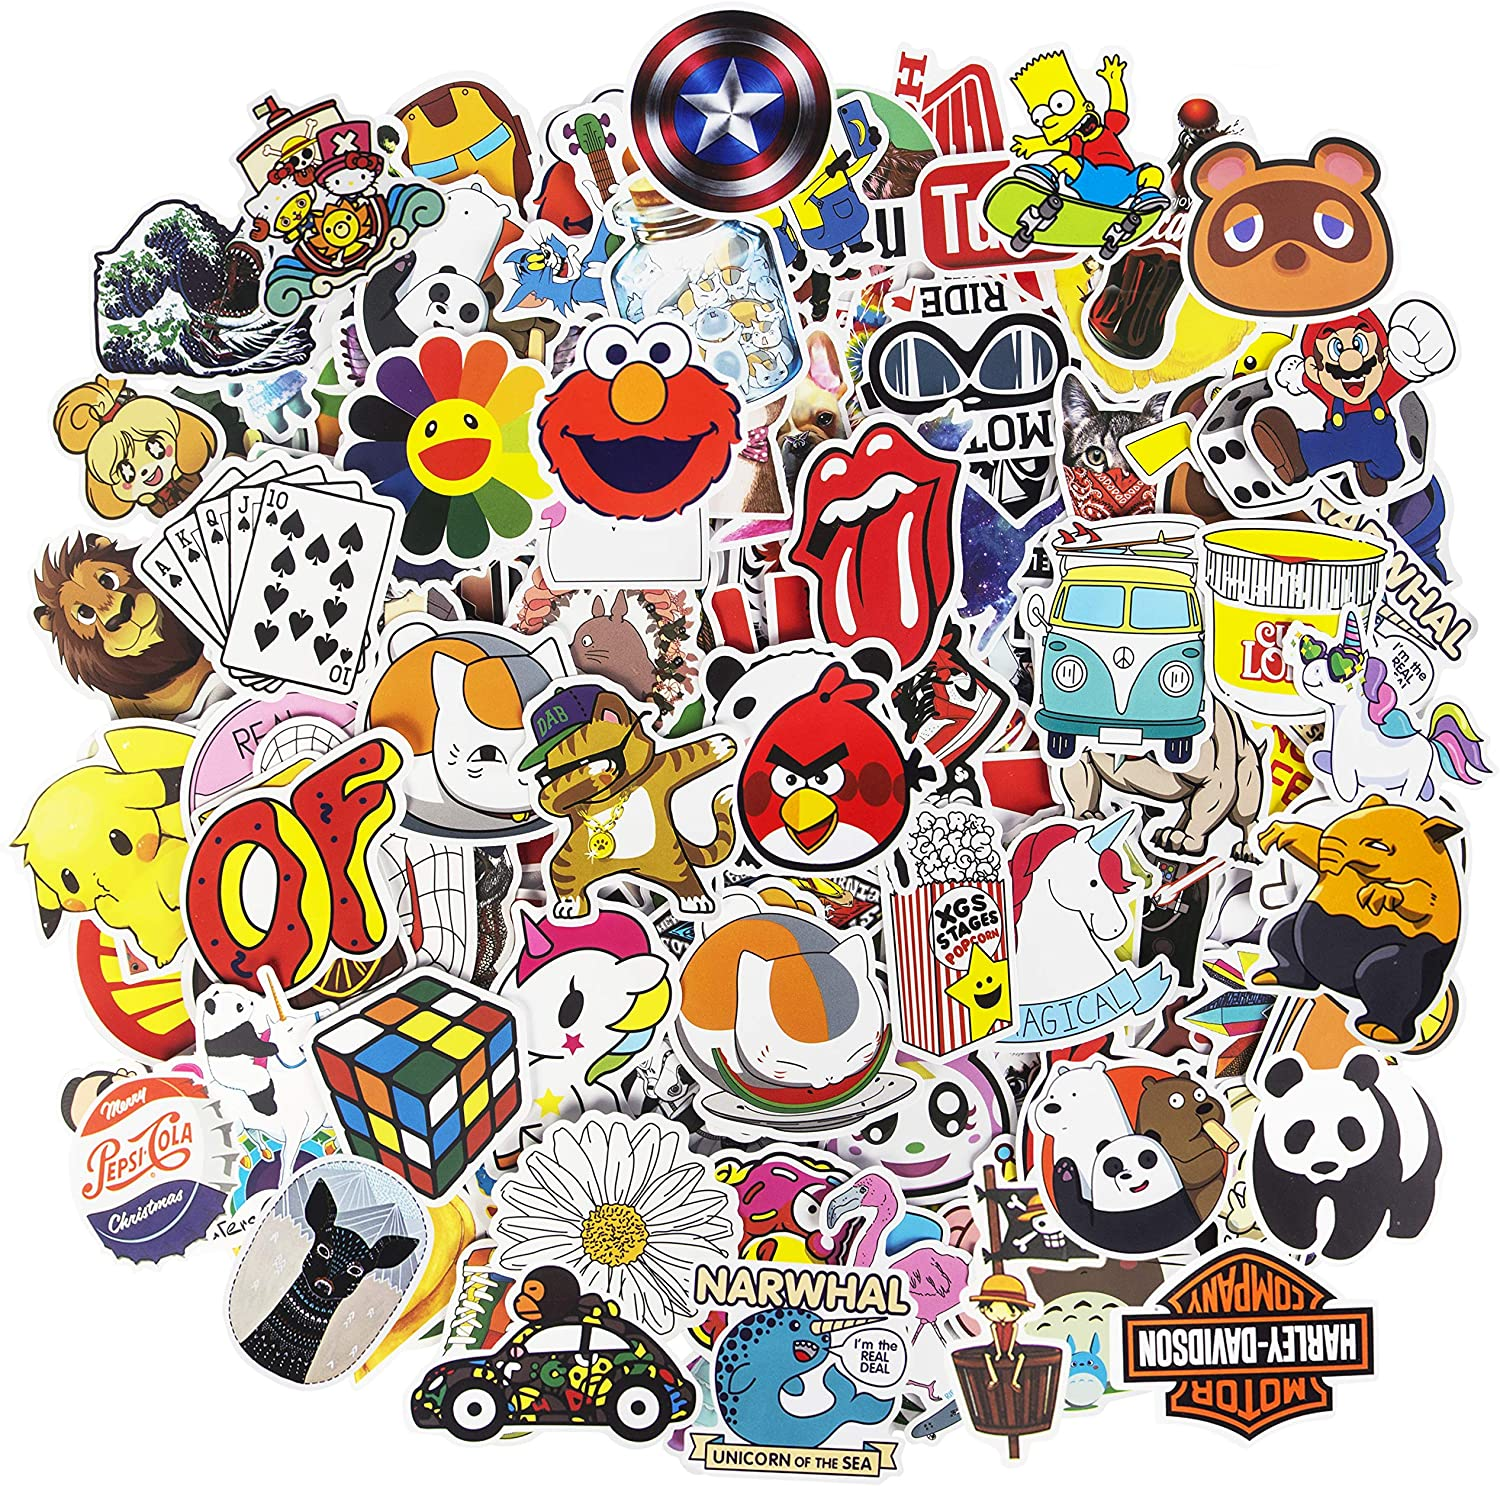 Cool Stickers, 200pcs Mixed Waterproof Vinyl Stickers for Water Bottles Laptop Stickers Cars Motorbikes Bicycle Skateboard Stickers Luggage Phone Graffiti Decals Computer Stickers for Teens